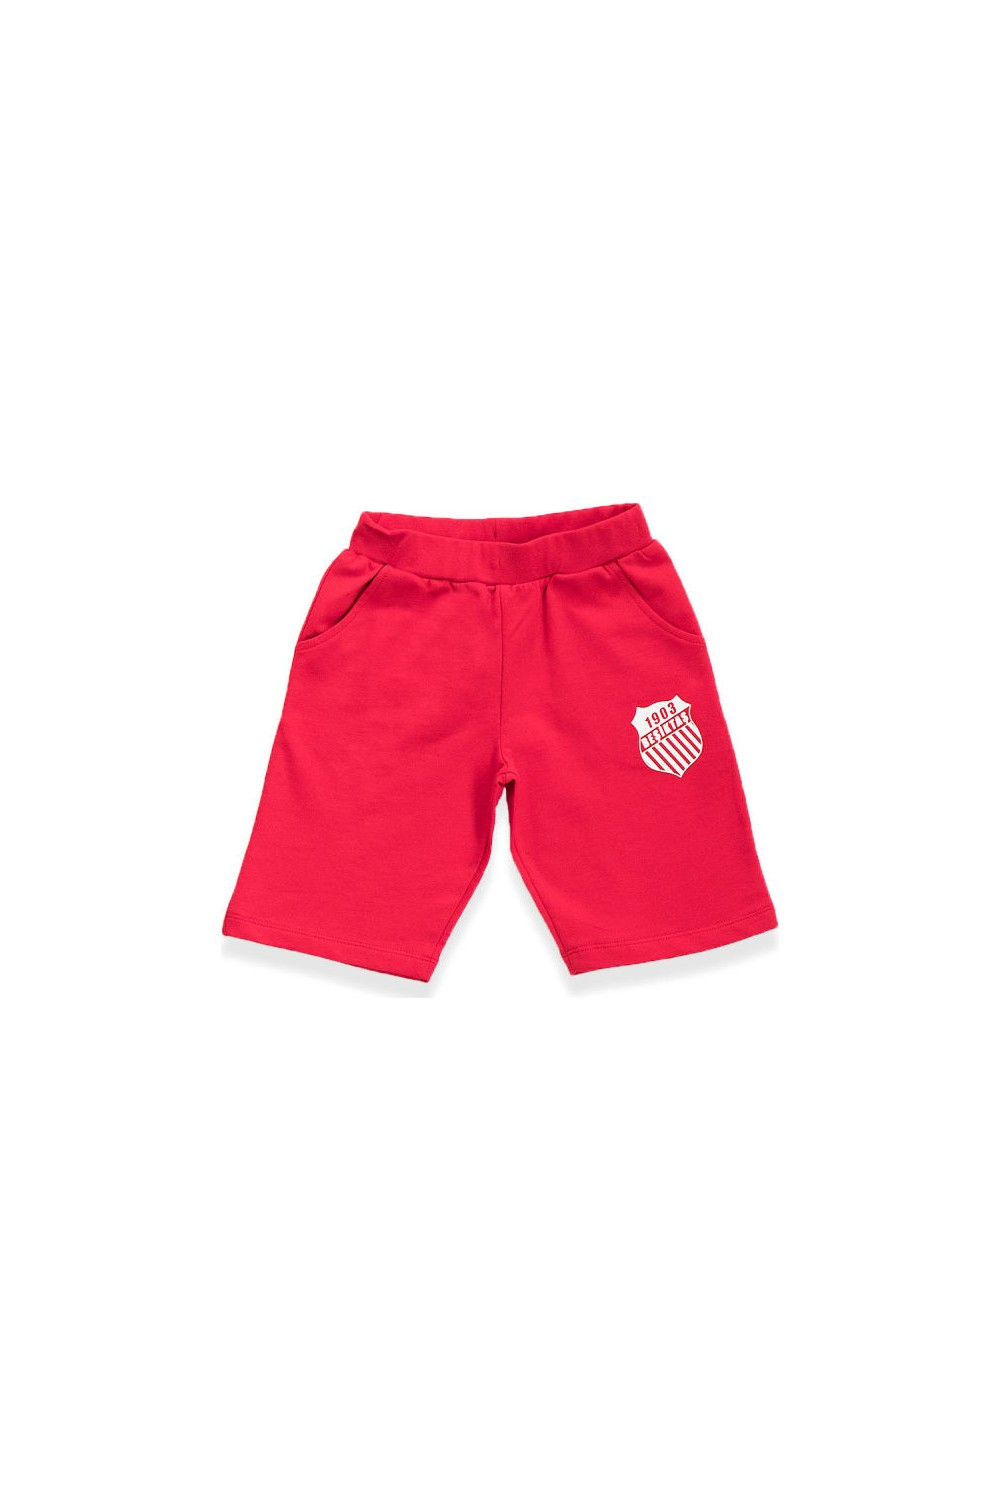 Besiktas Kids' Printed Details Shorts